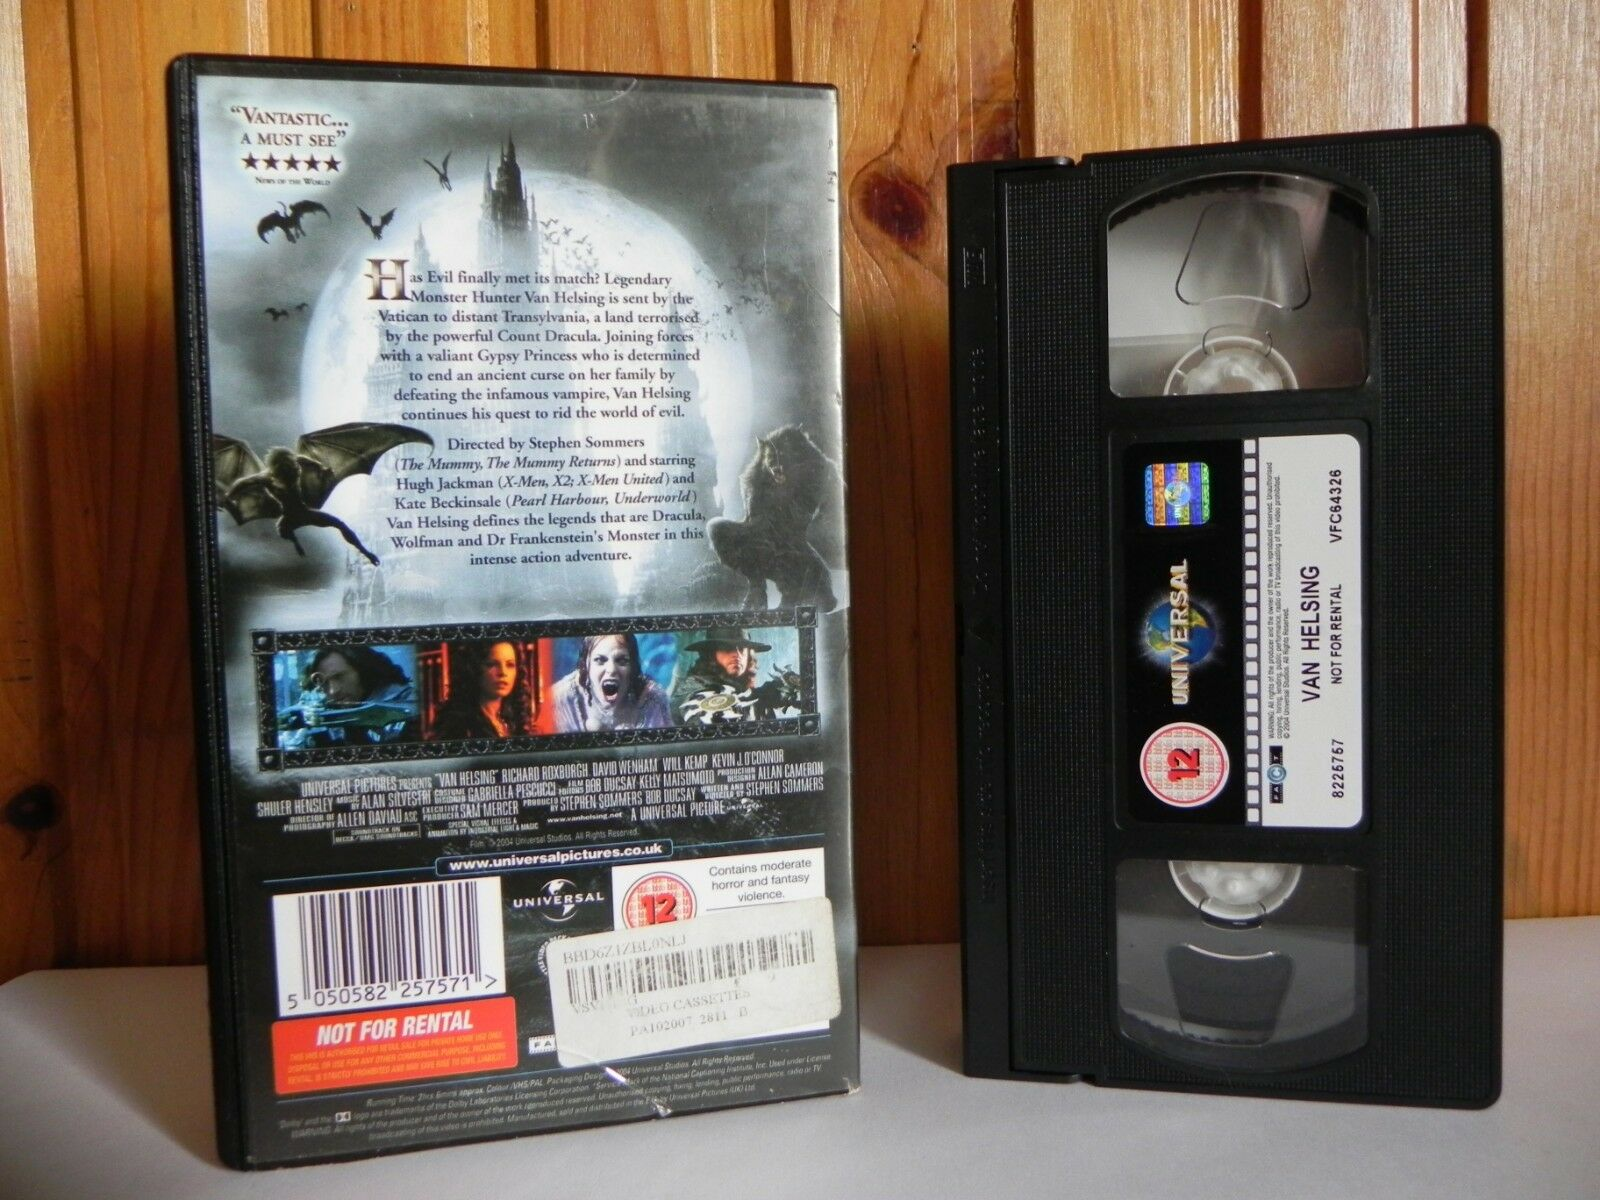 Van Helsing - Universal - Action - Adventure - Jackman - Beckinsale - Pal VHS